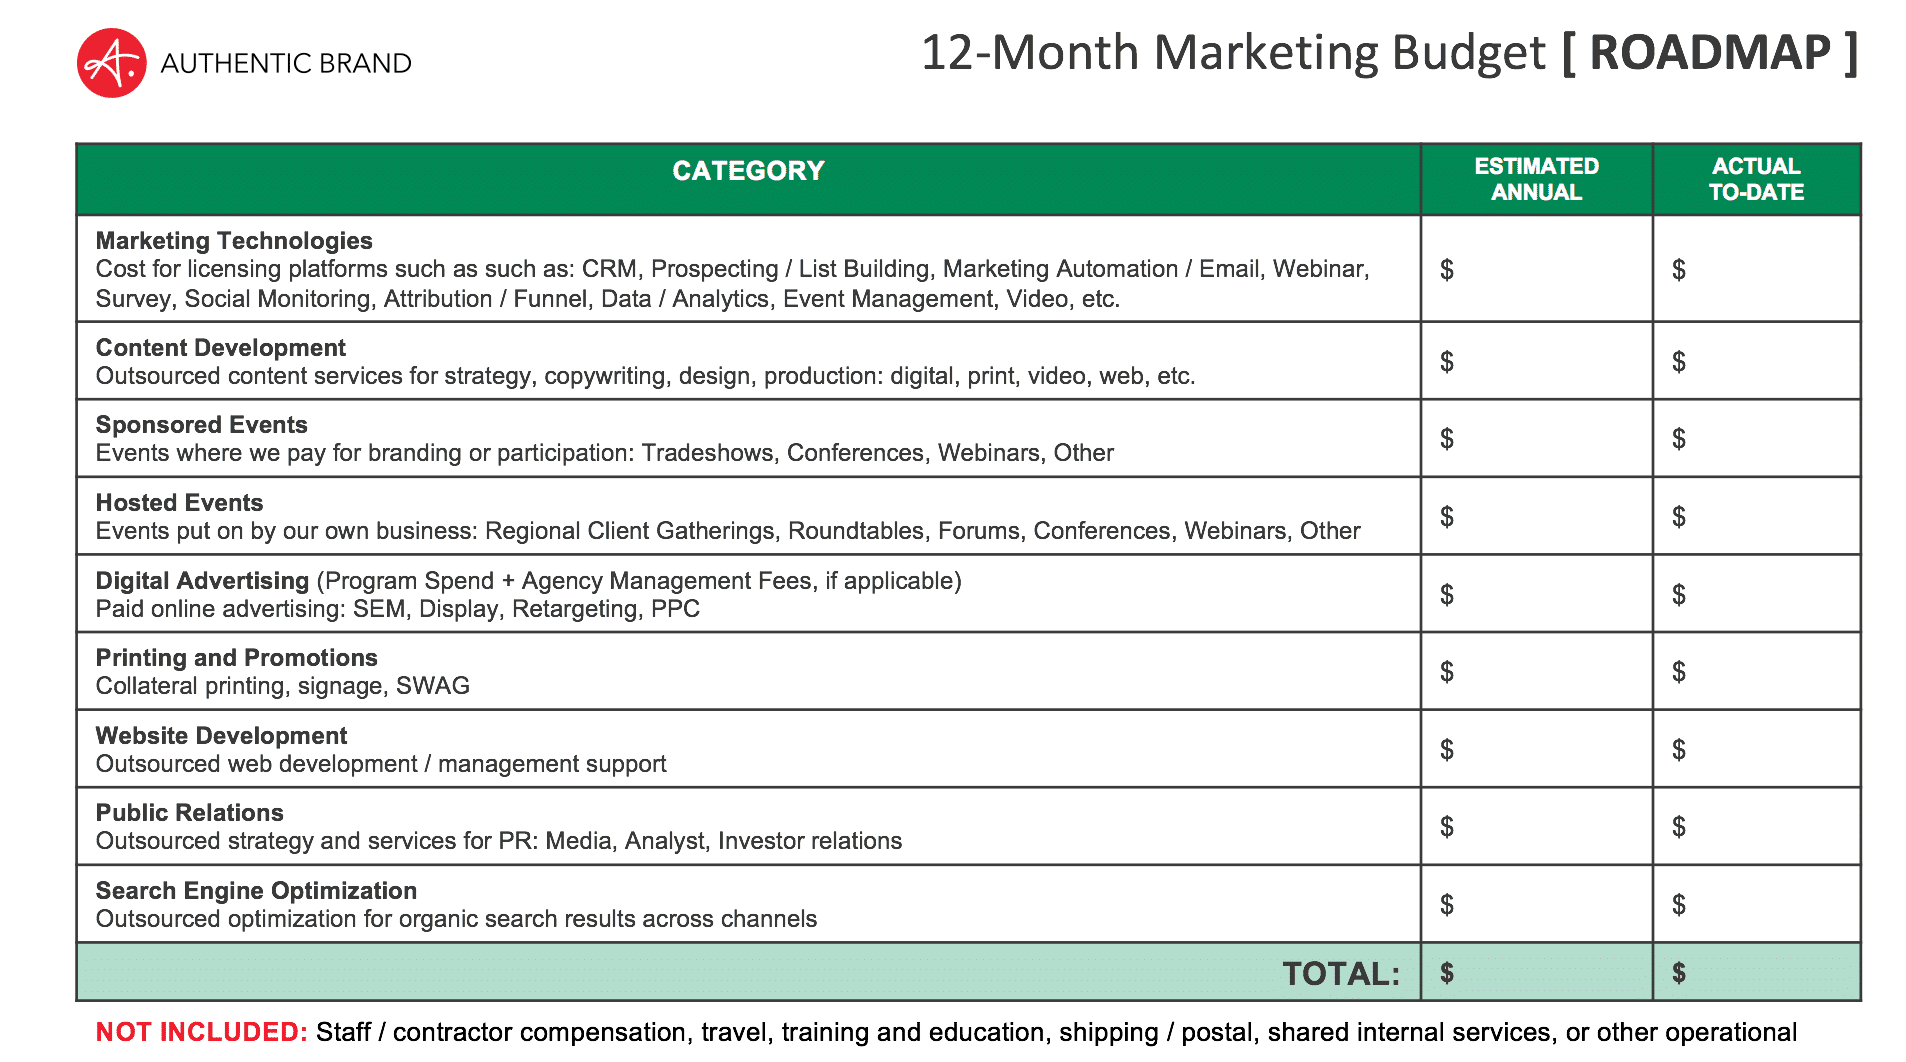 Authentic Brand: Marketing Program Budget Template